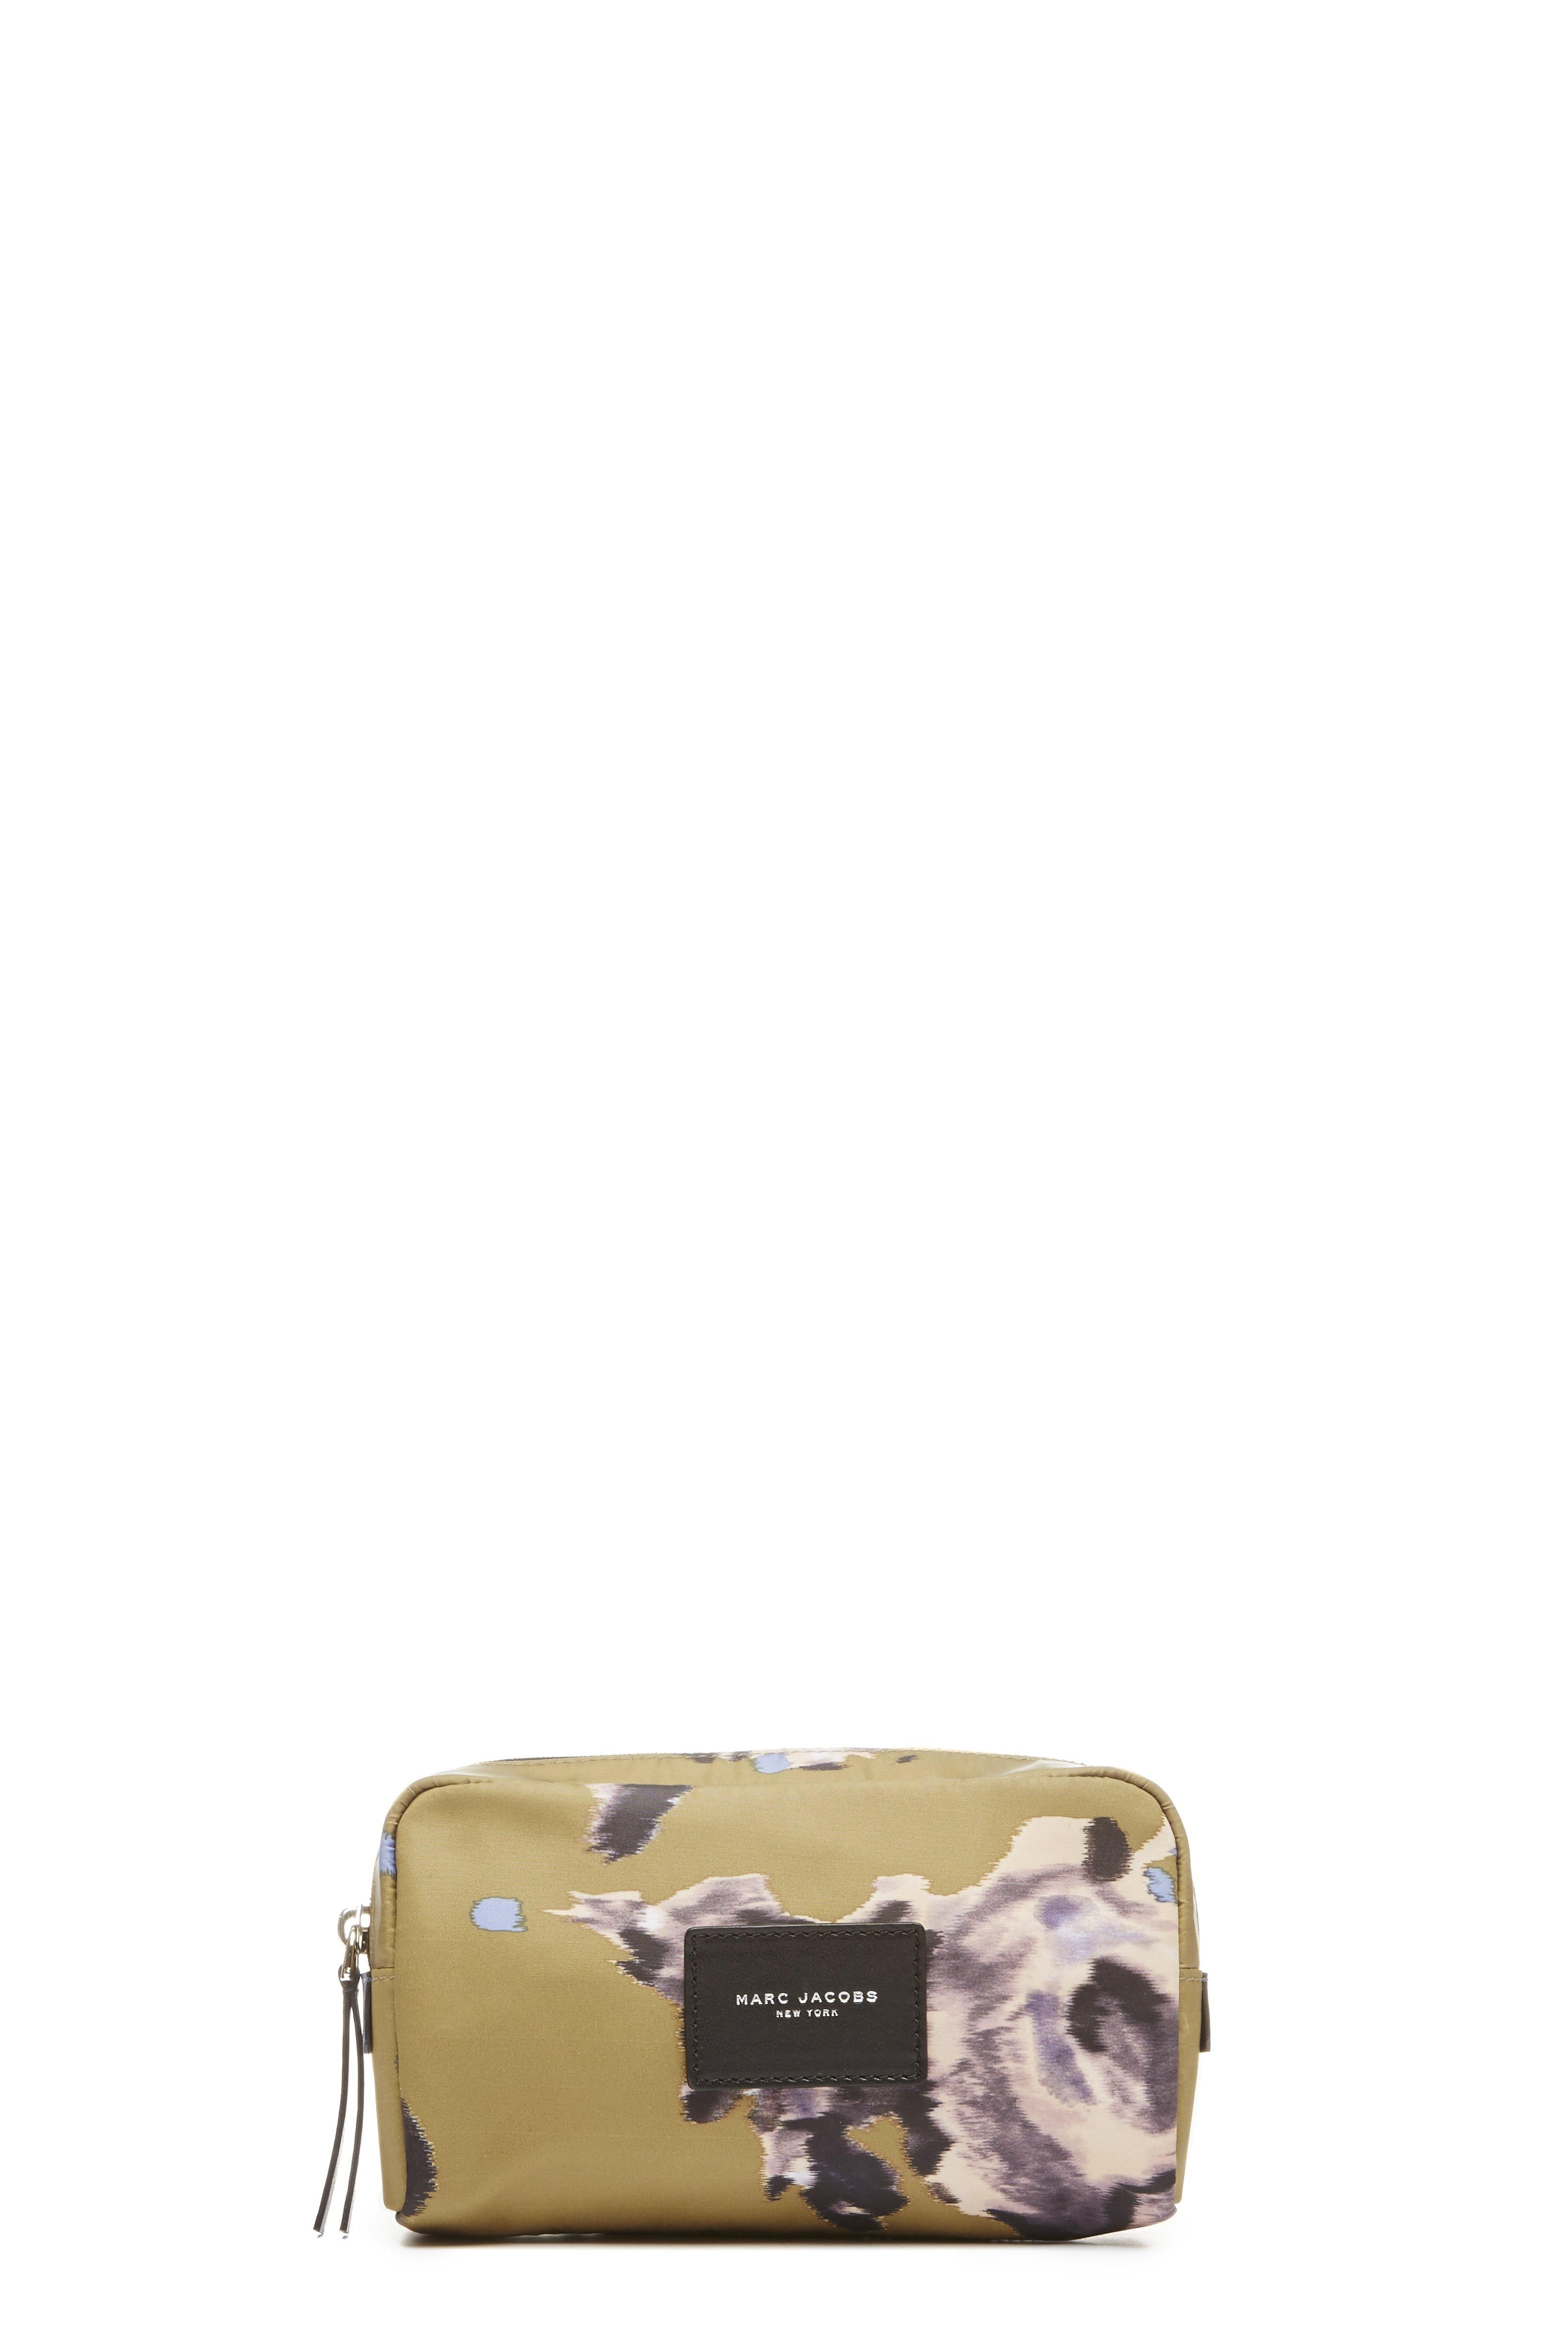 MARC JACOBS B.Y.O.T. Brocade Floral Large Cosmetics Case. #marcjacobs #bags #accessories #cosmetic #